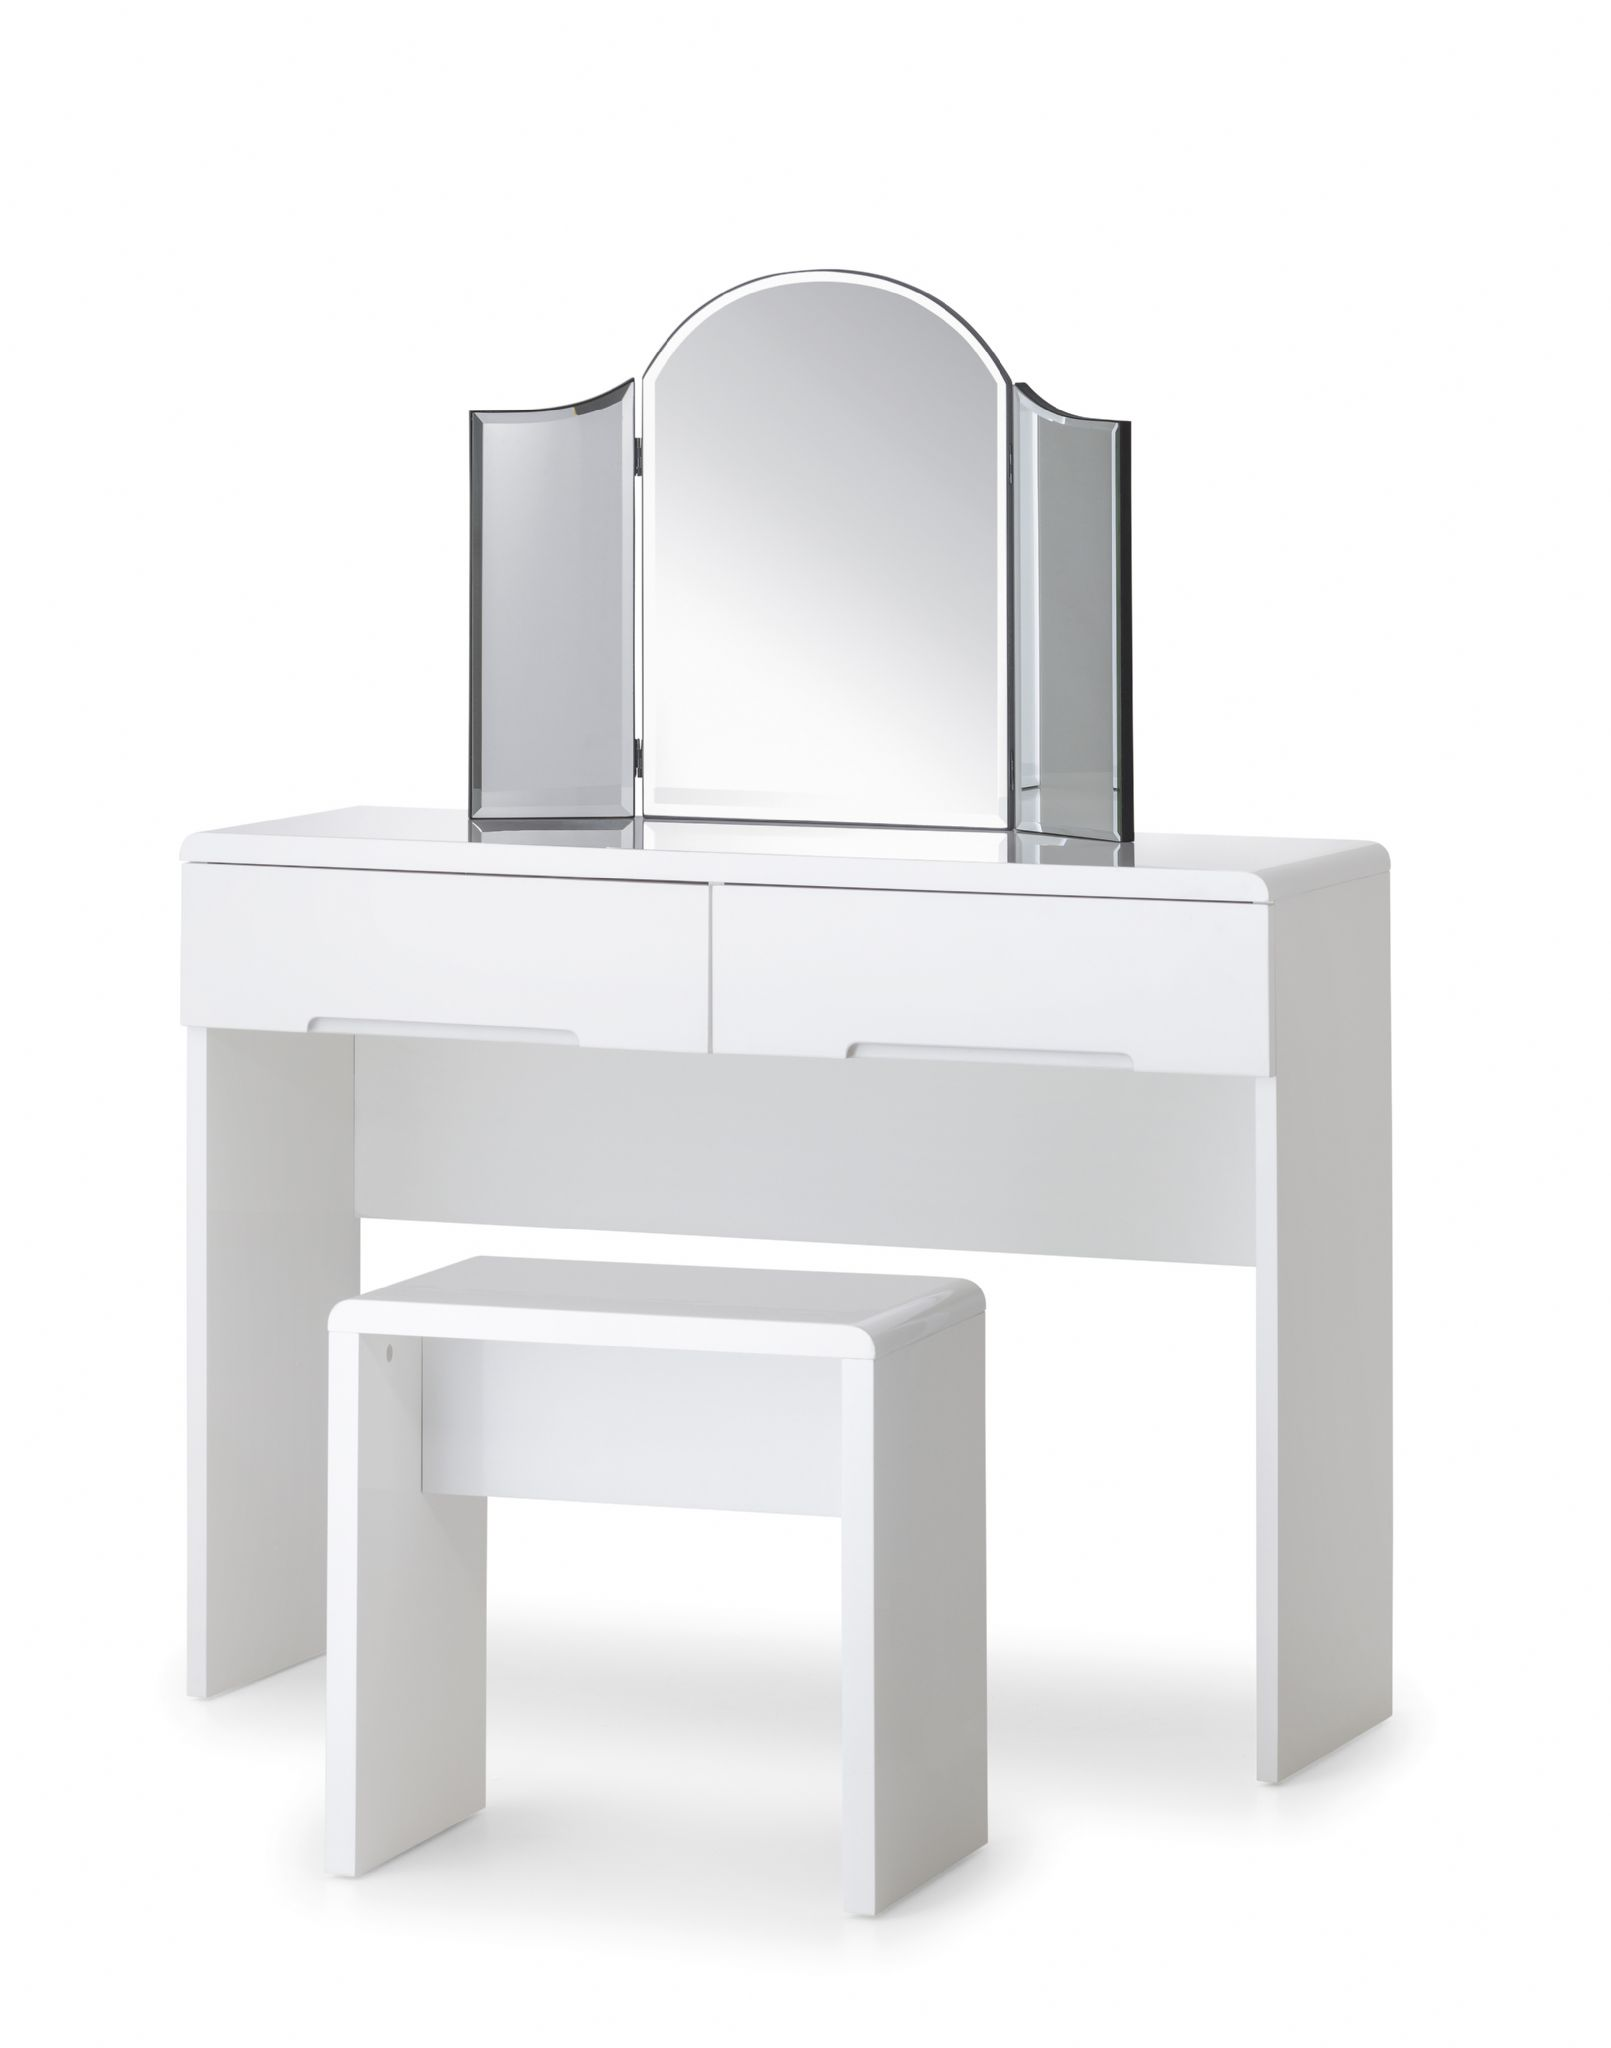 alzira white high gloss dressing table with 2 drawers jb316. Black Bedroom Furniture Sets. Home Design Ideas